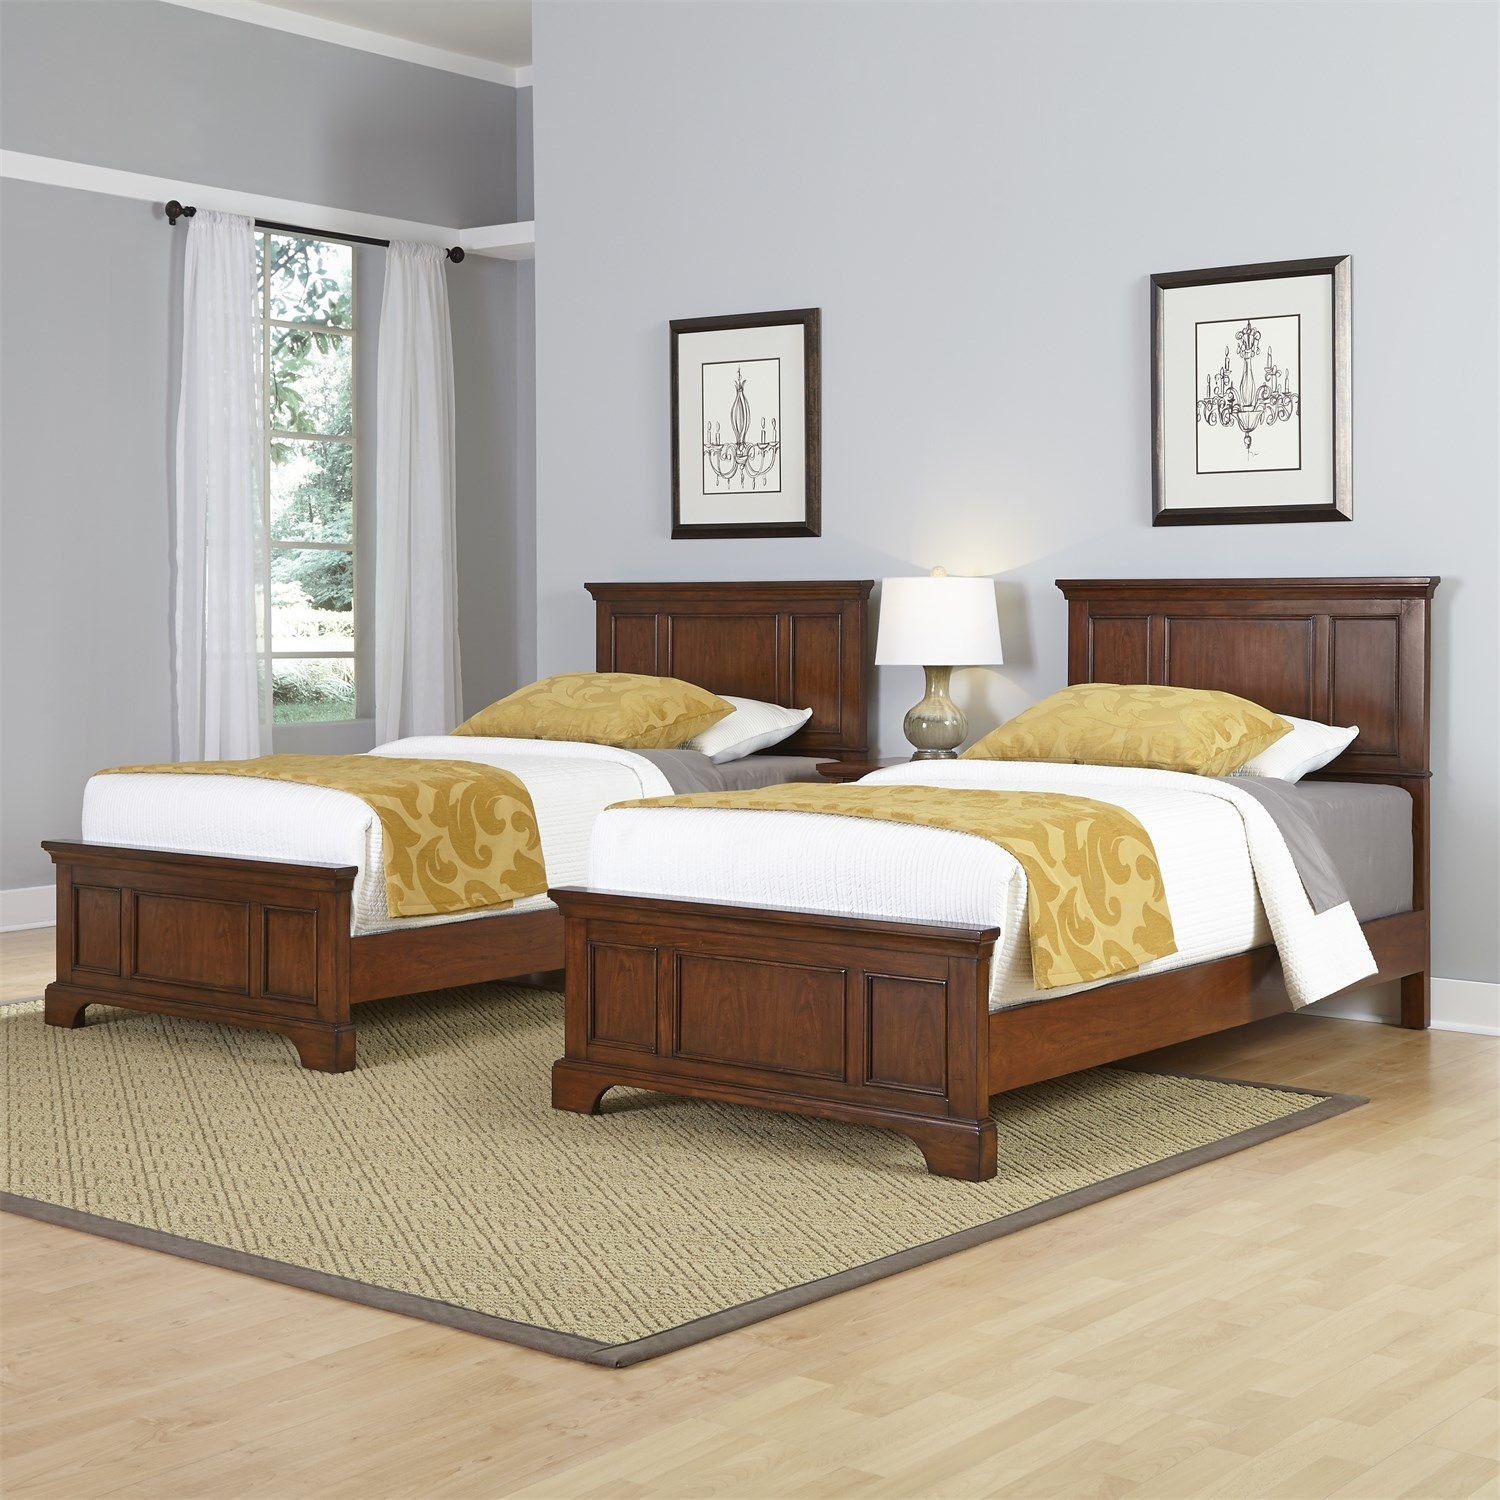 Bed Frames For Two Twin Beds